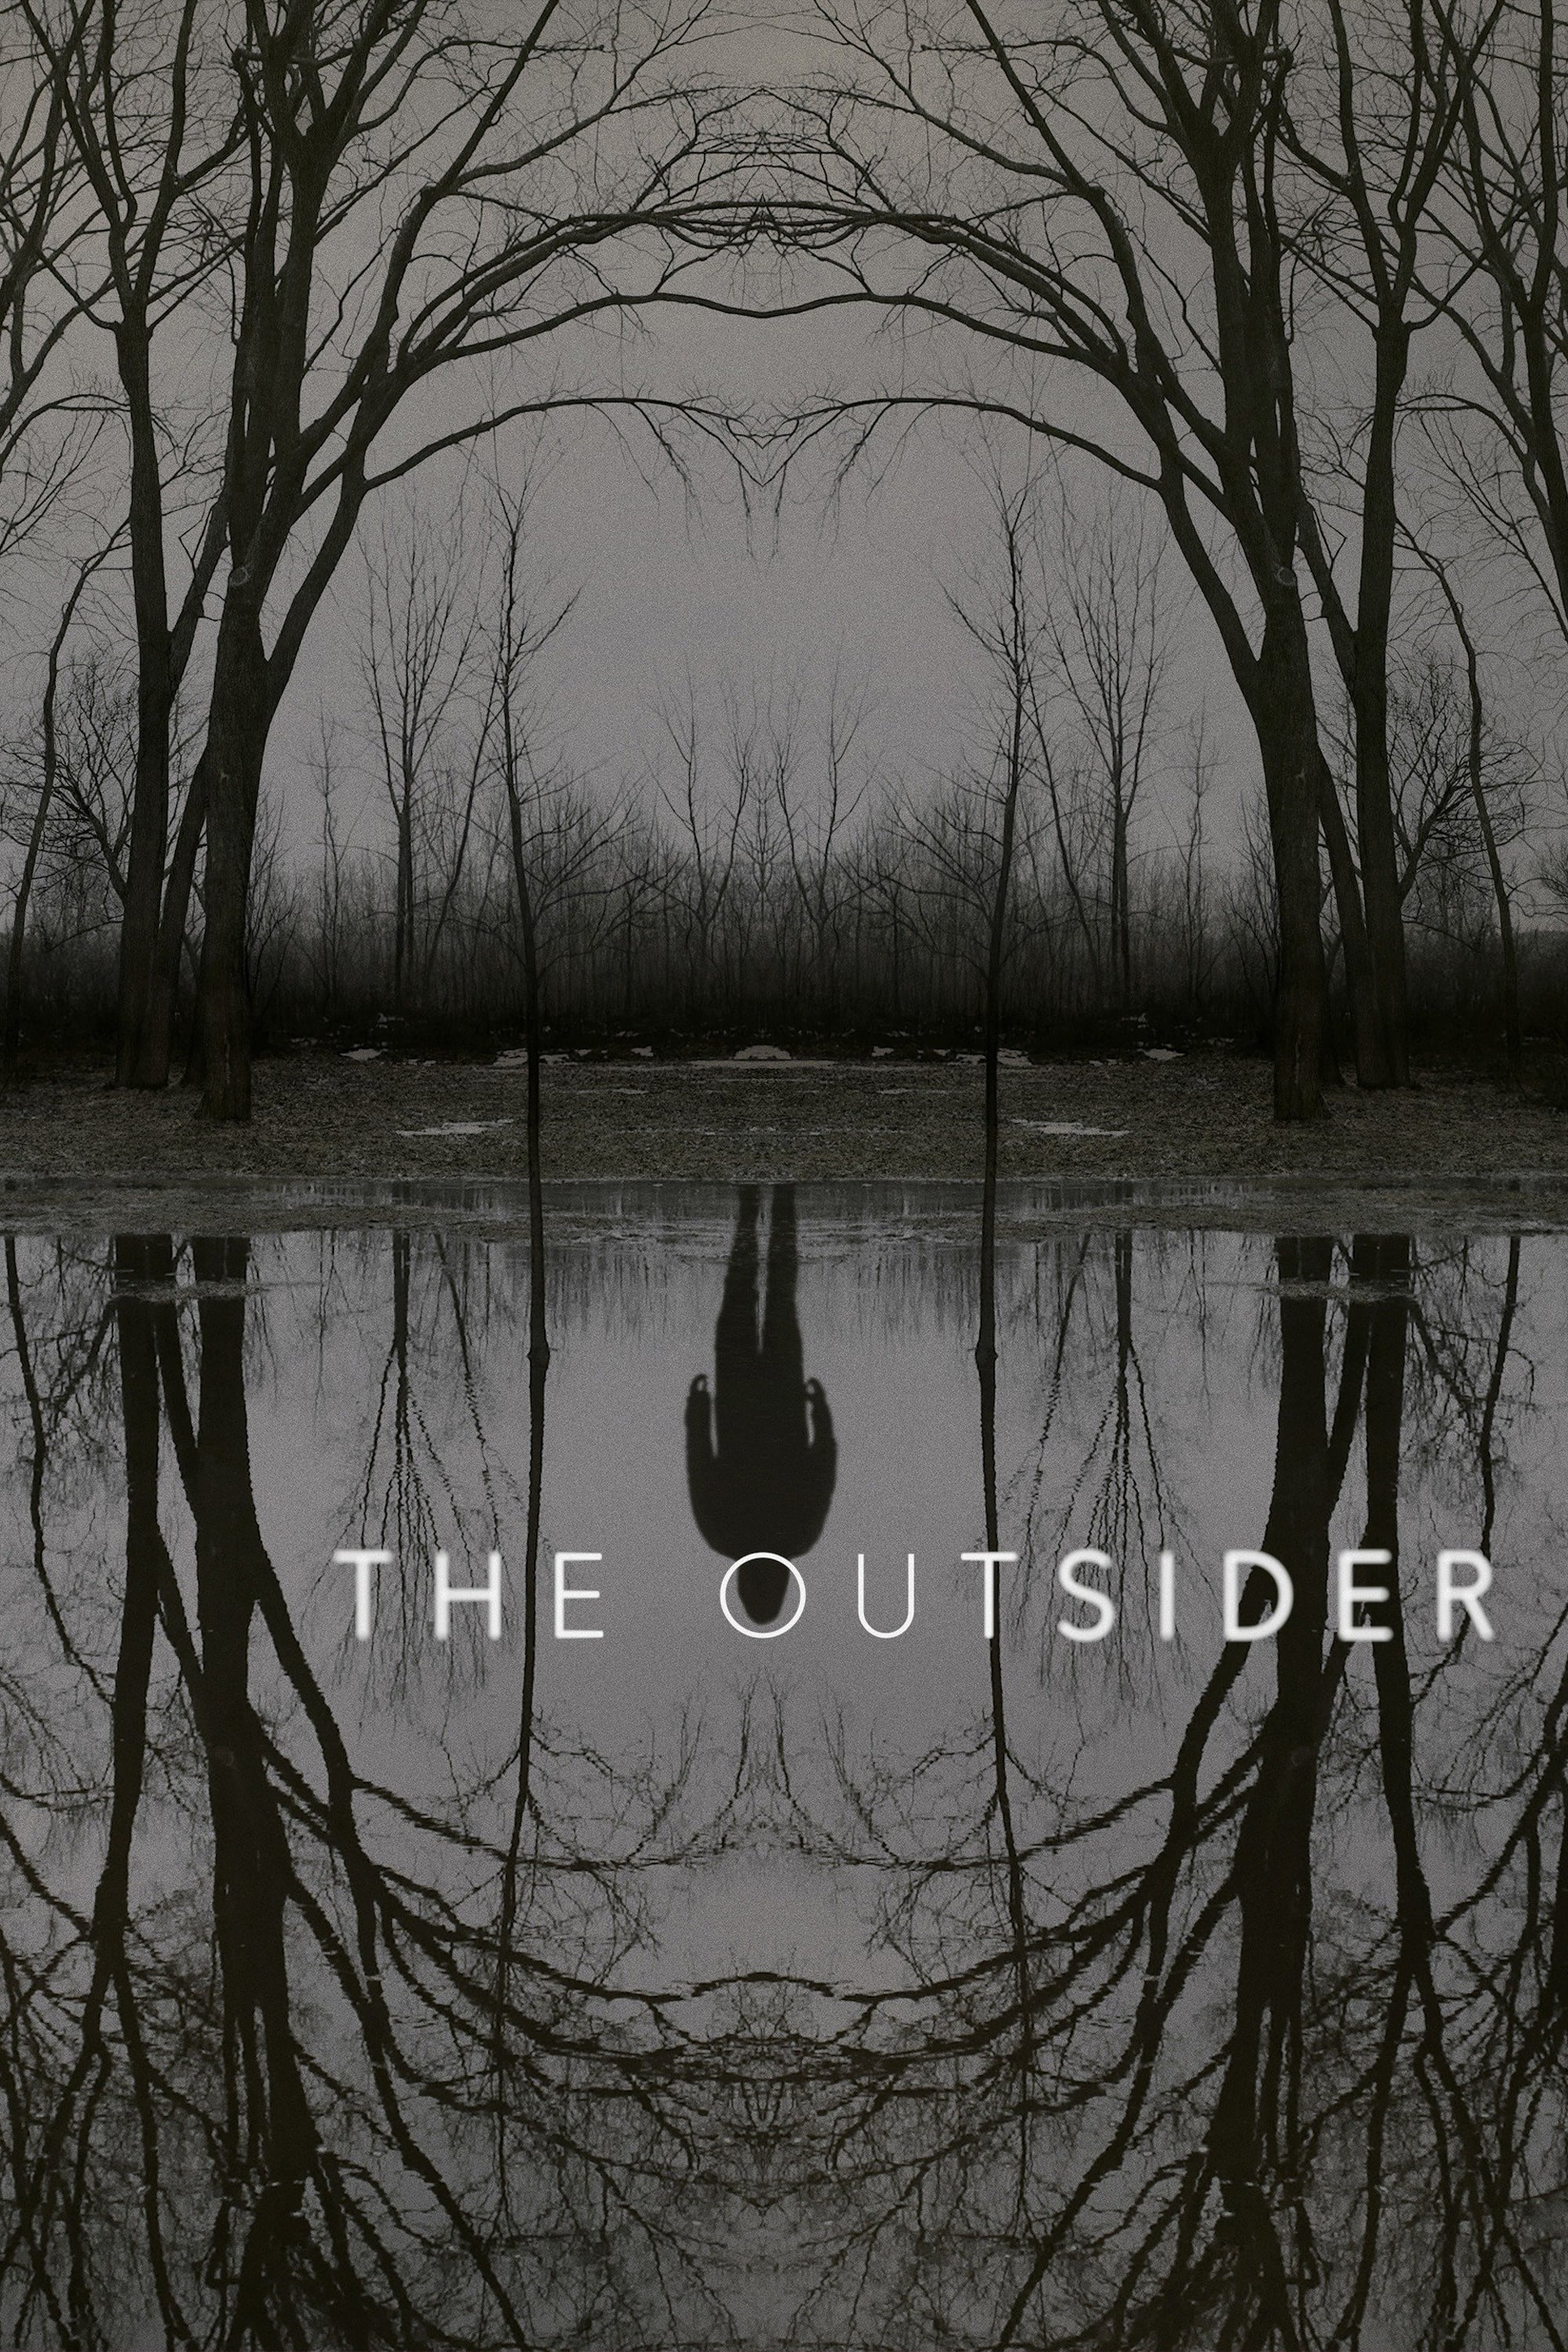 The Outsider rating